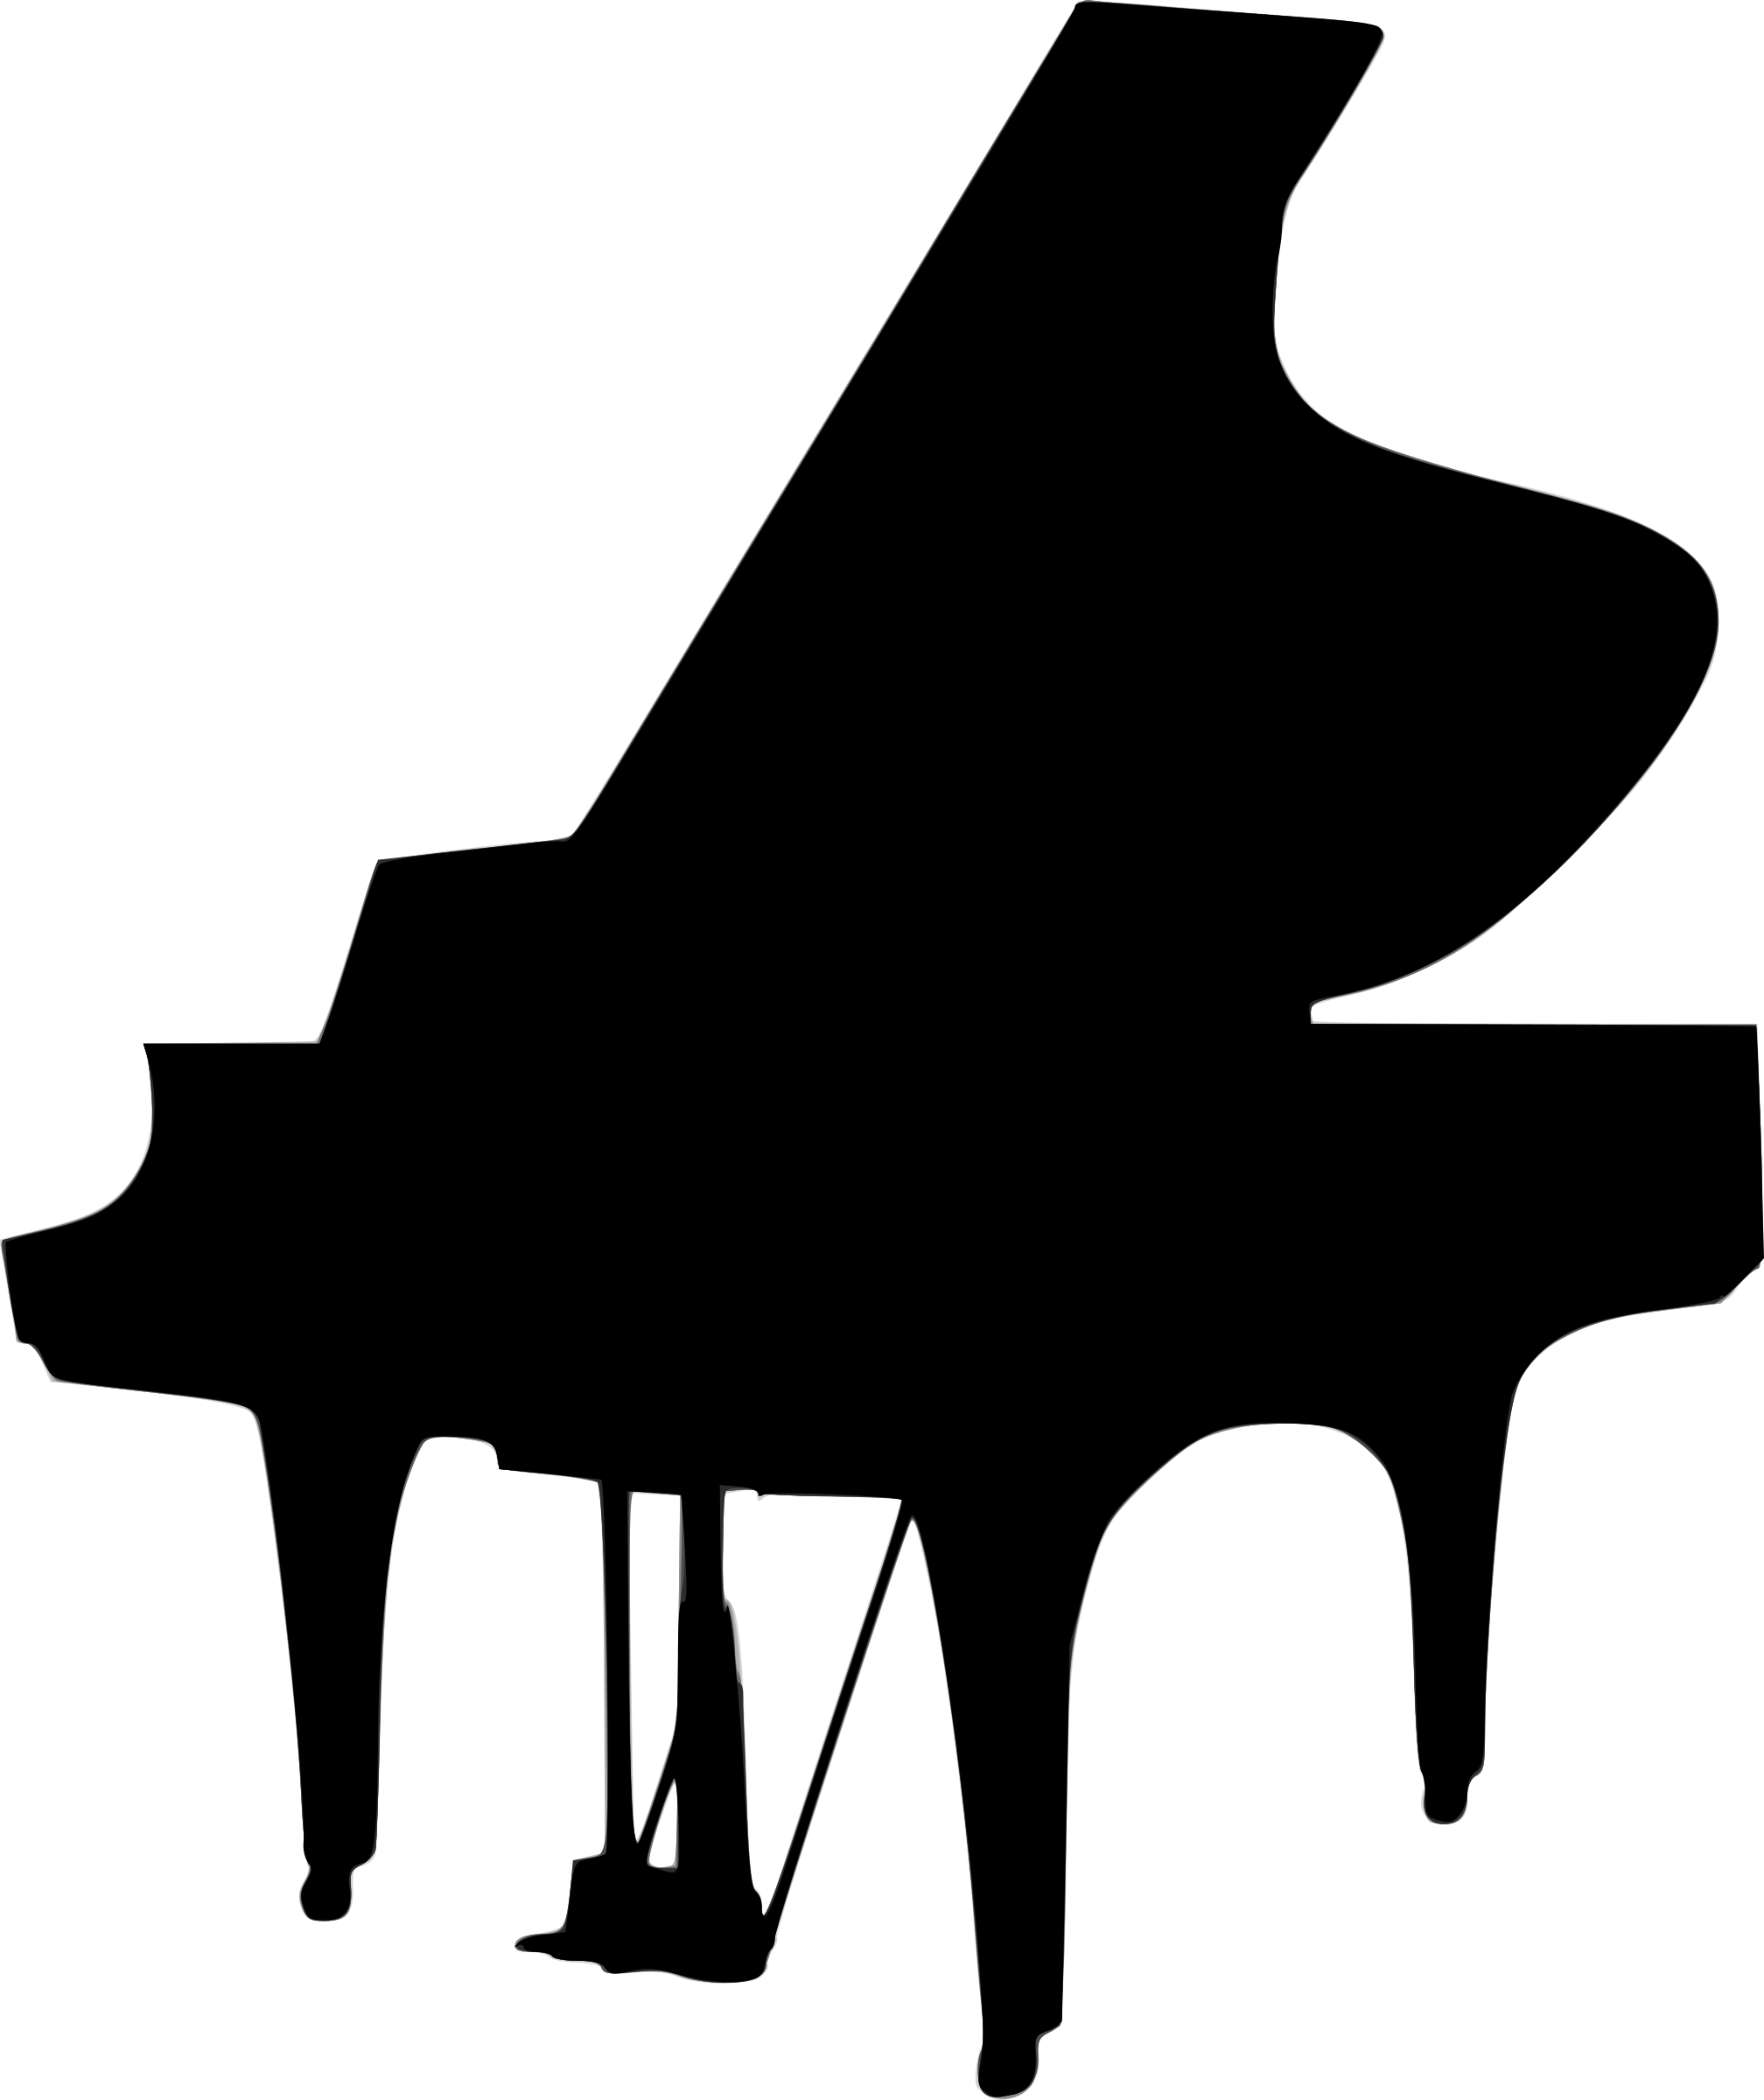 Piano clipart musique. Silhouette icons png free